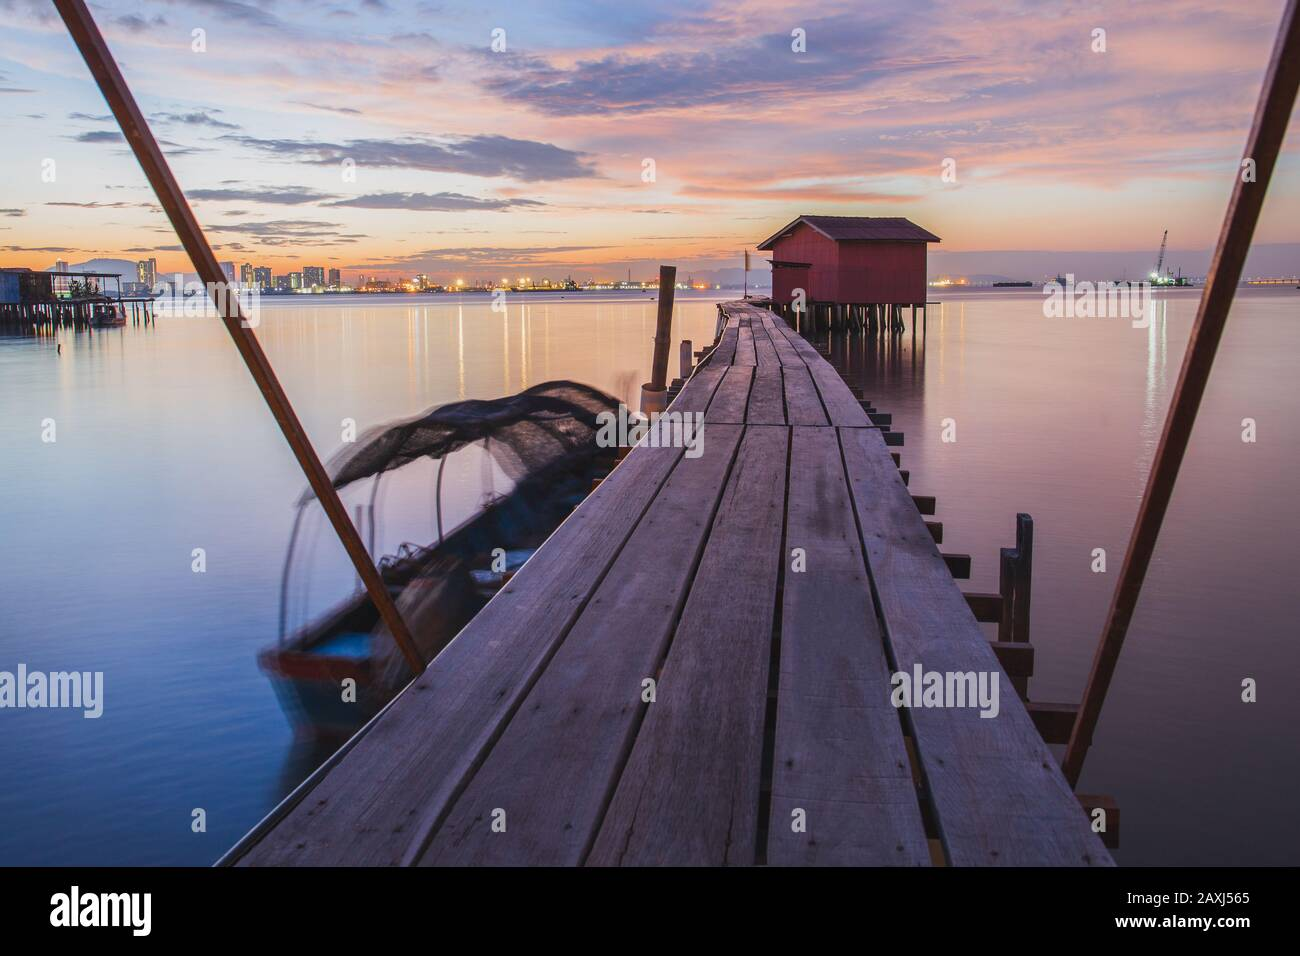 Wooden bridge with hut at sunrise in Chew jetty Georgetown Penang. Stock Photo